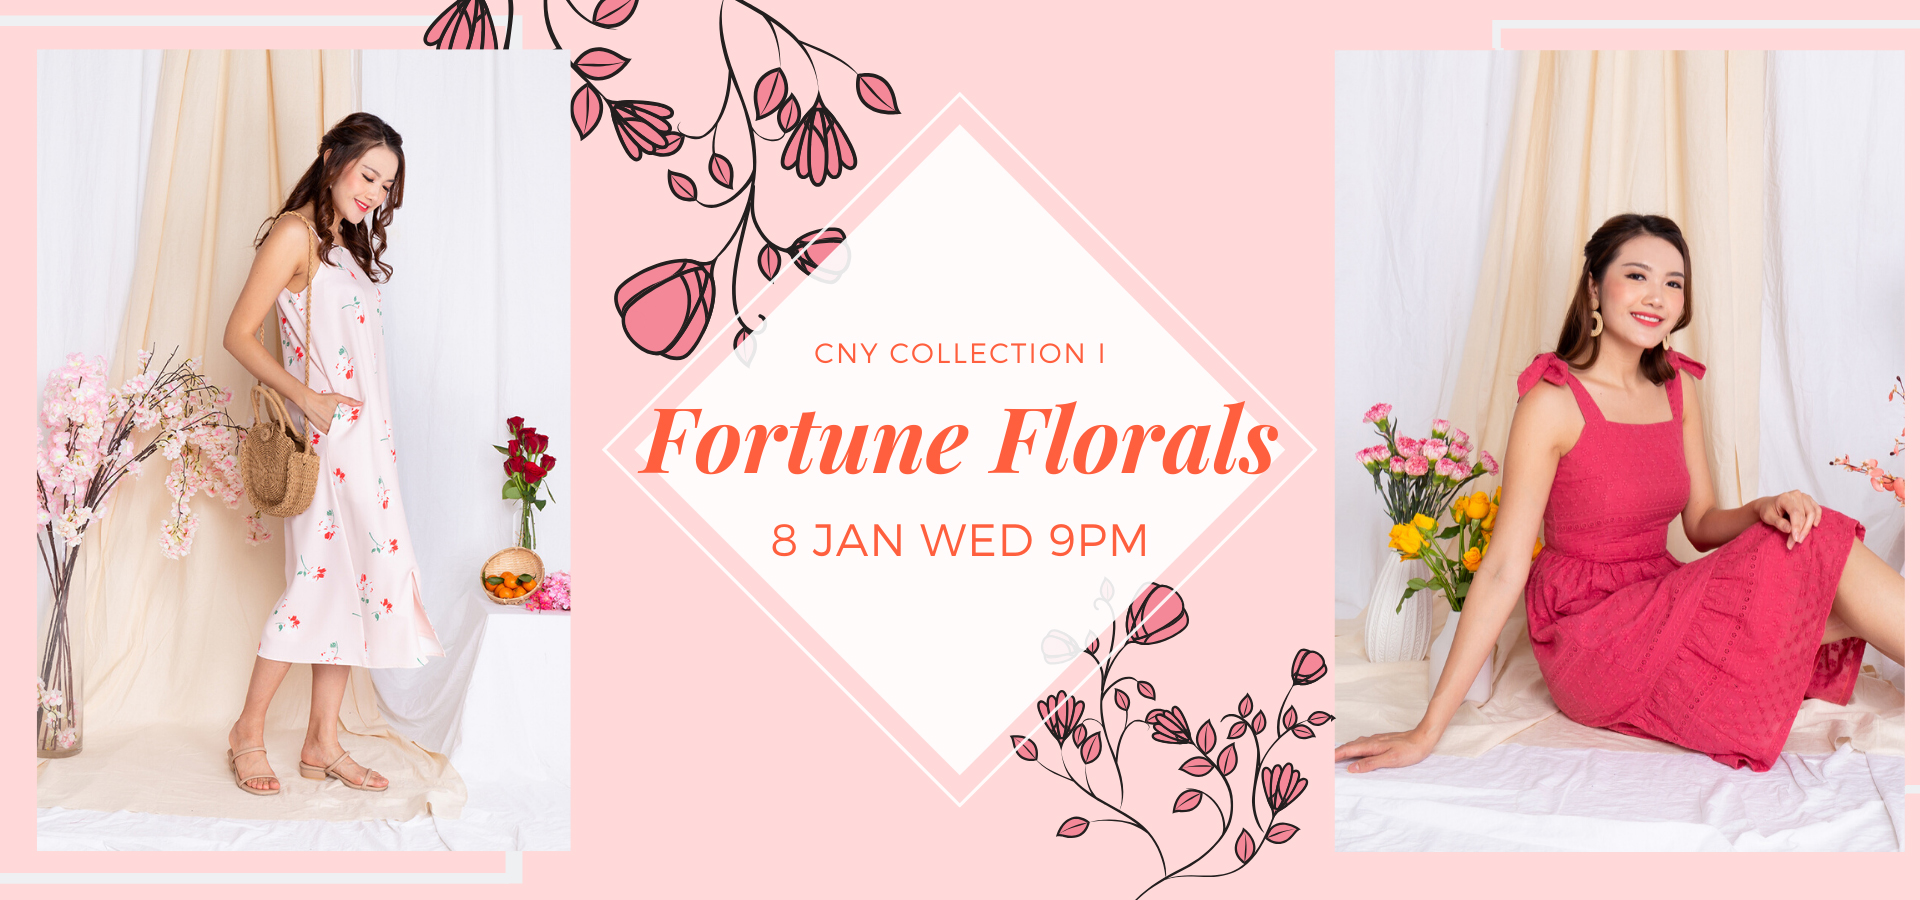 Fortune Florals